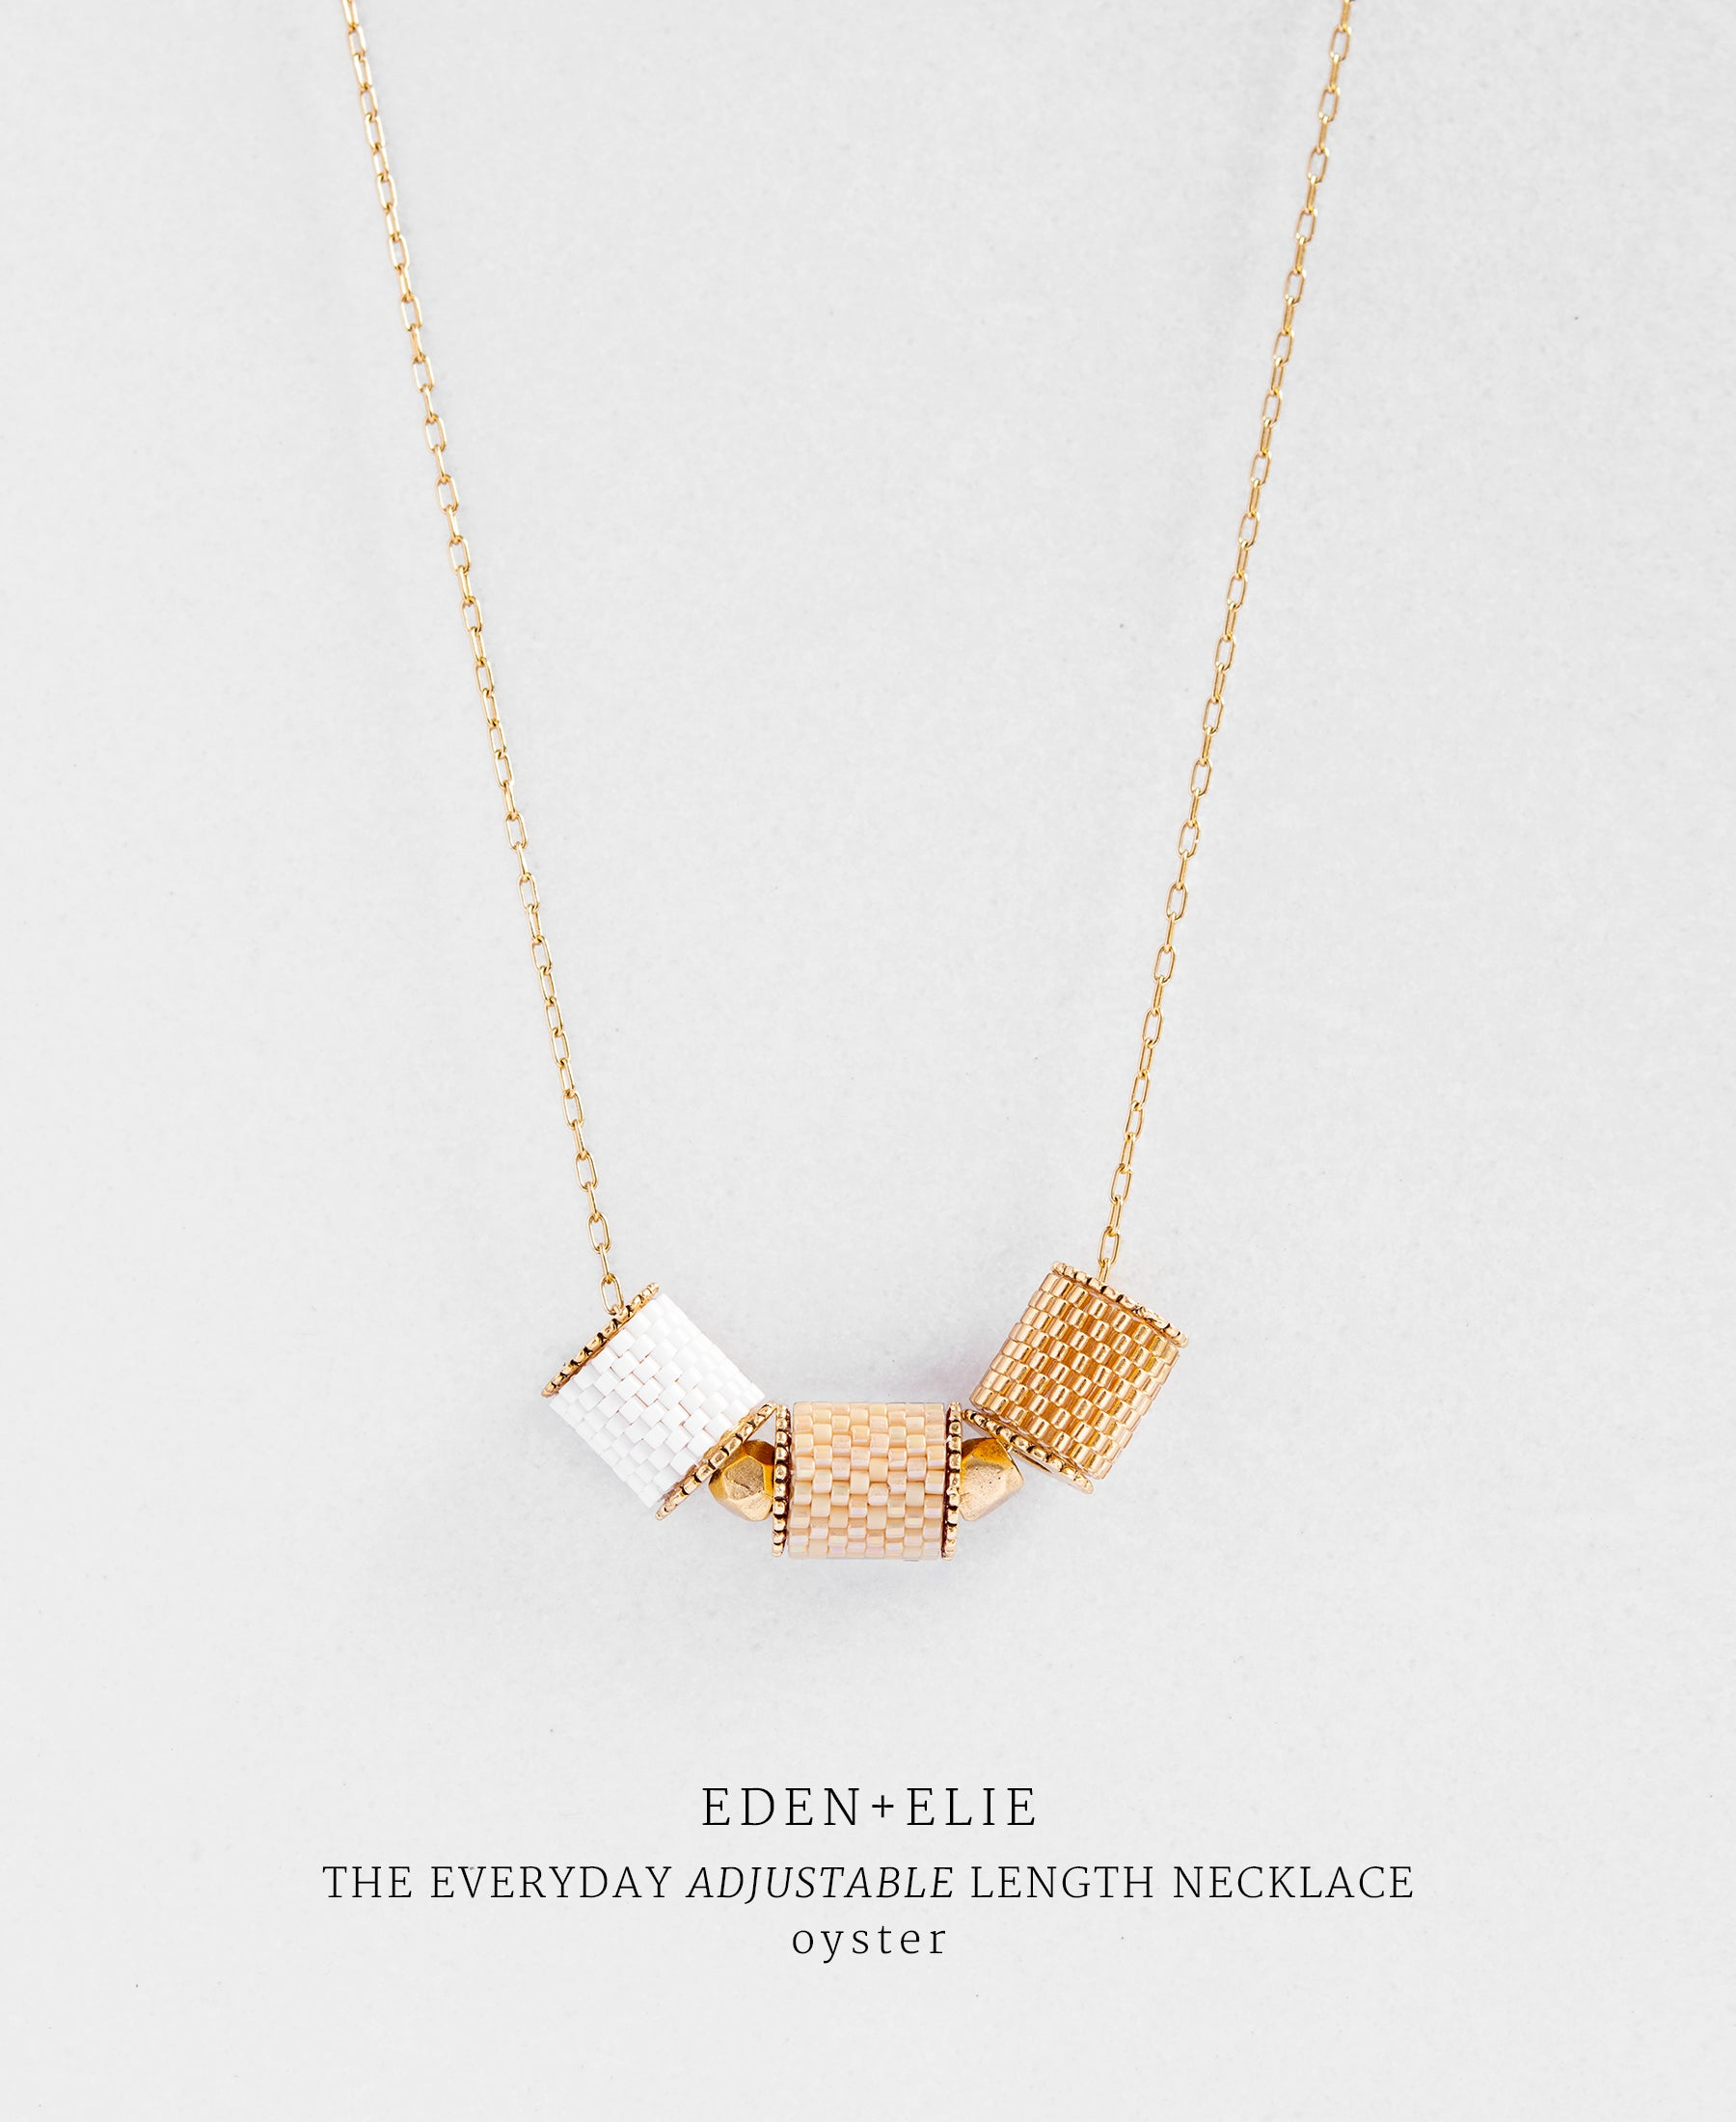 EDEN + ELIE gold plated jewelry Everyday adjustable length necklace - light oyster